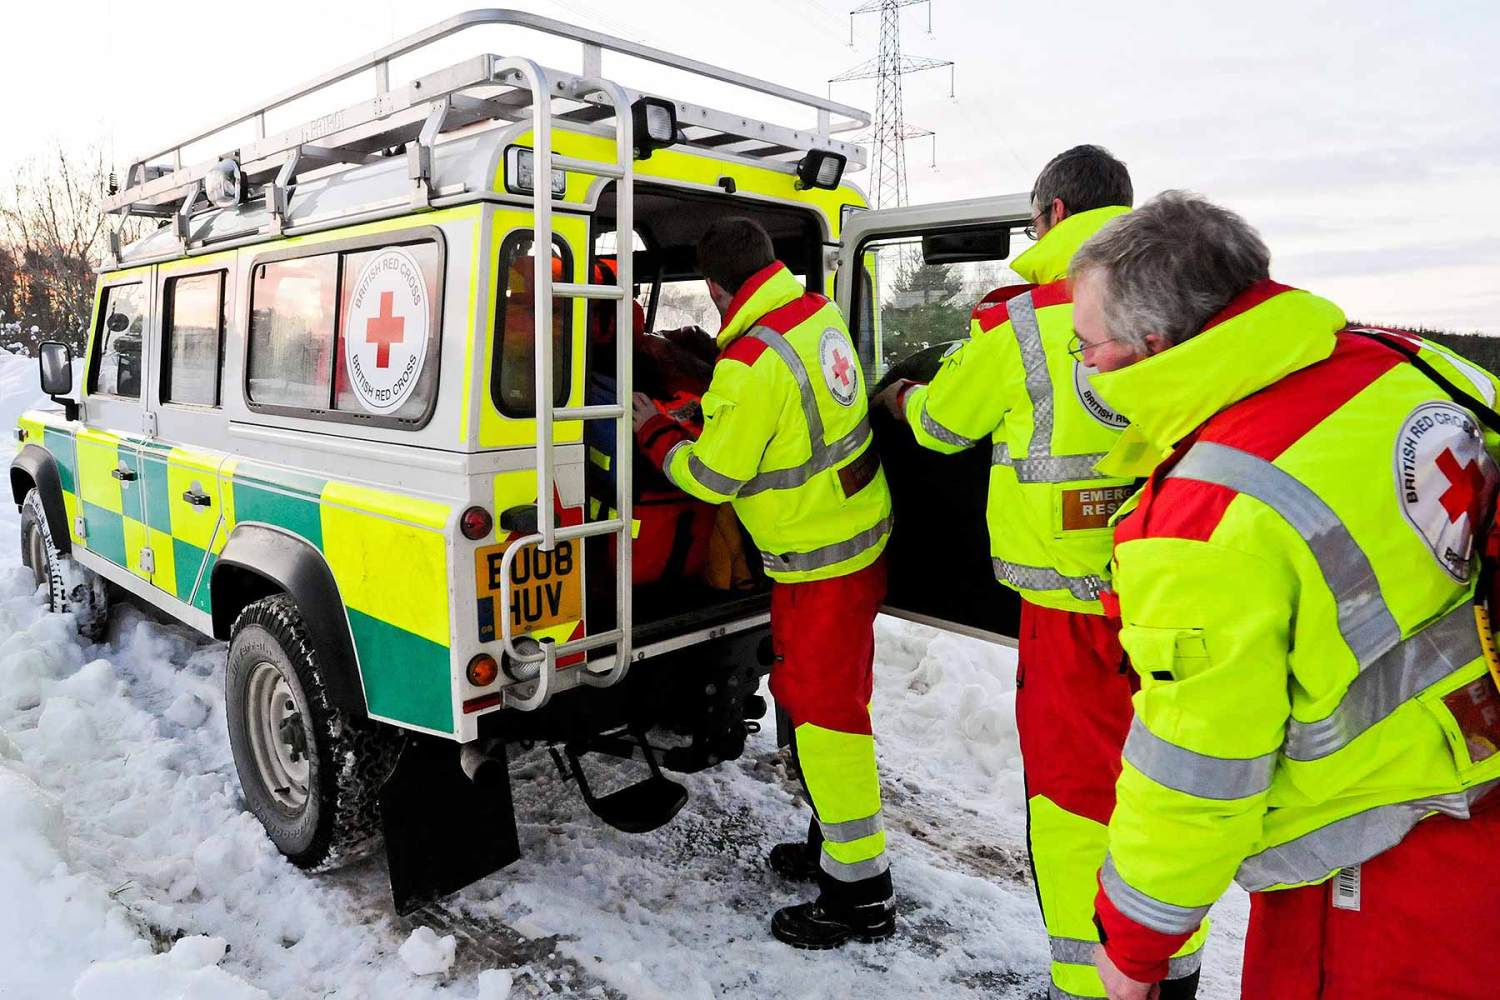 Land Rover emergency services